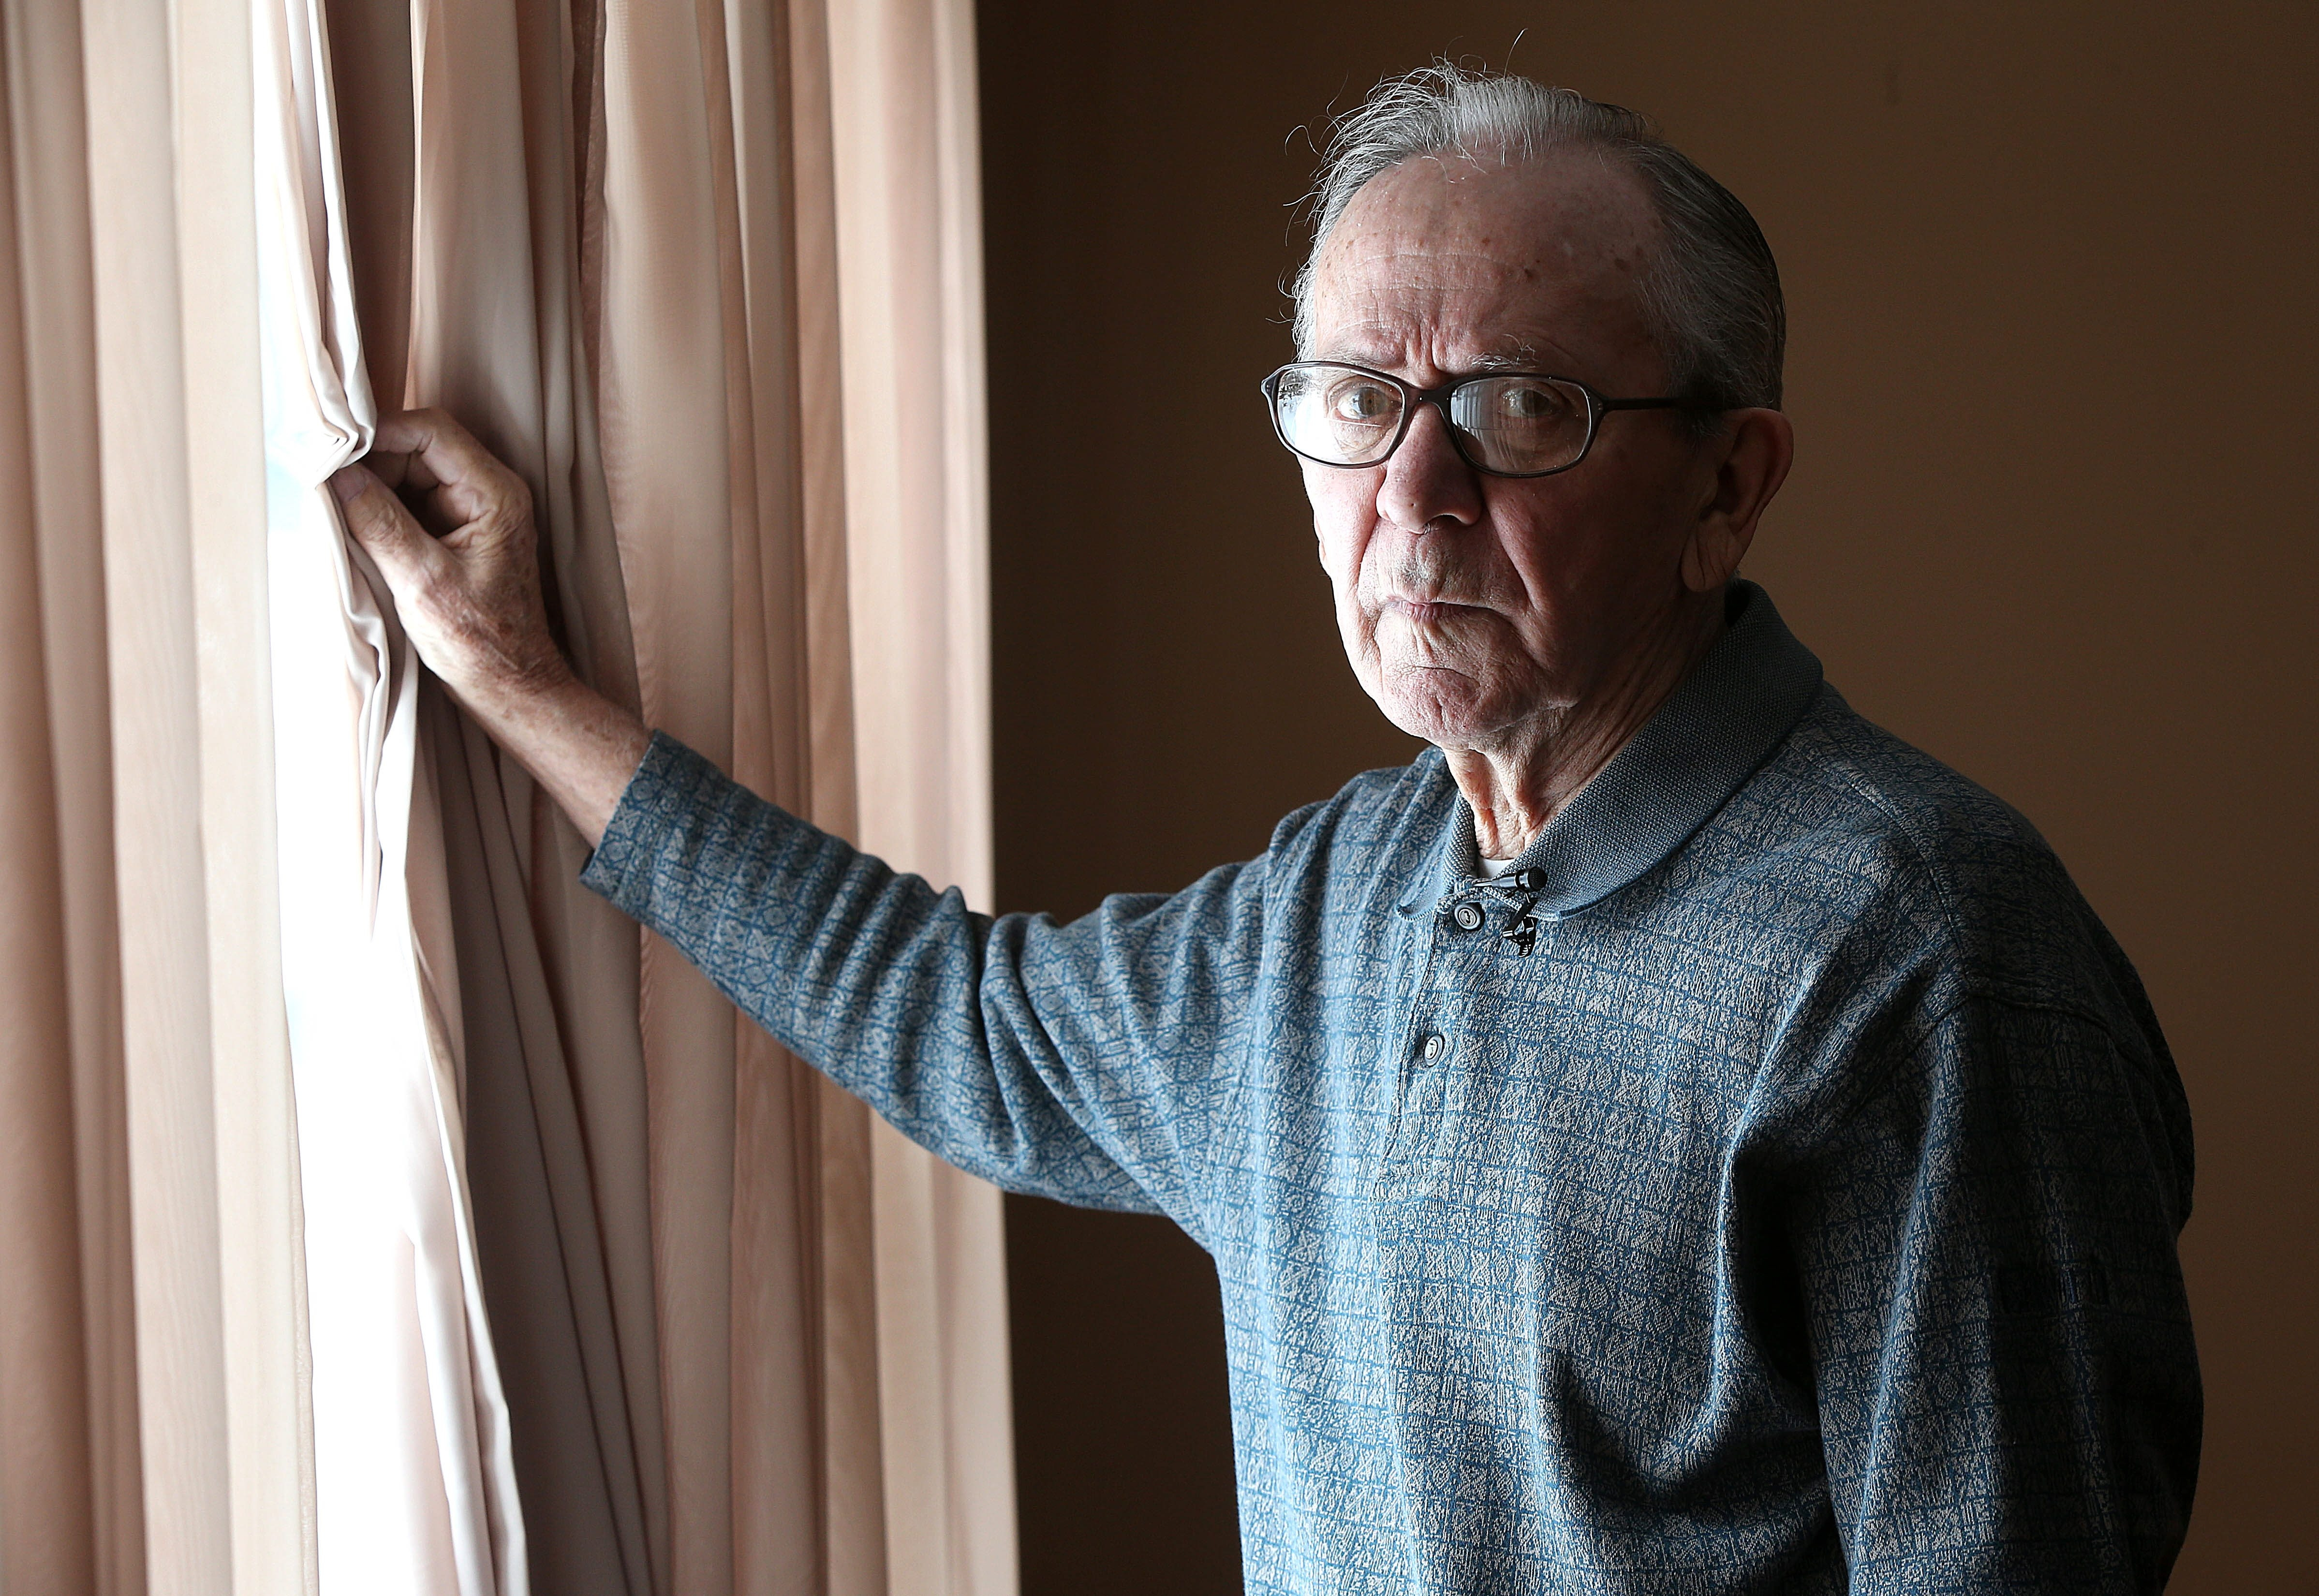 Korean War veteran Joseph P. Barilec thought he would learn some new skills and a few dollars by enlisting in the Army with his friends when jobs were short after high school.